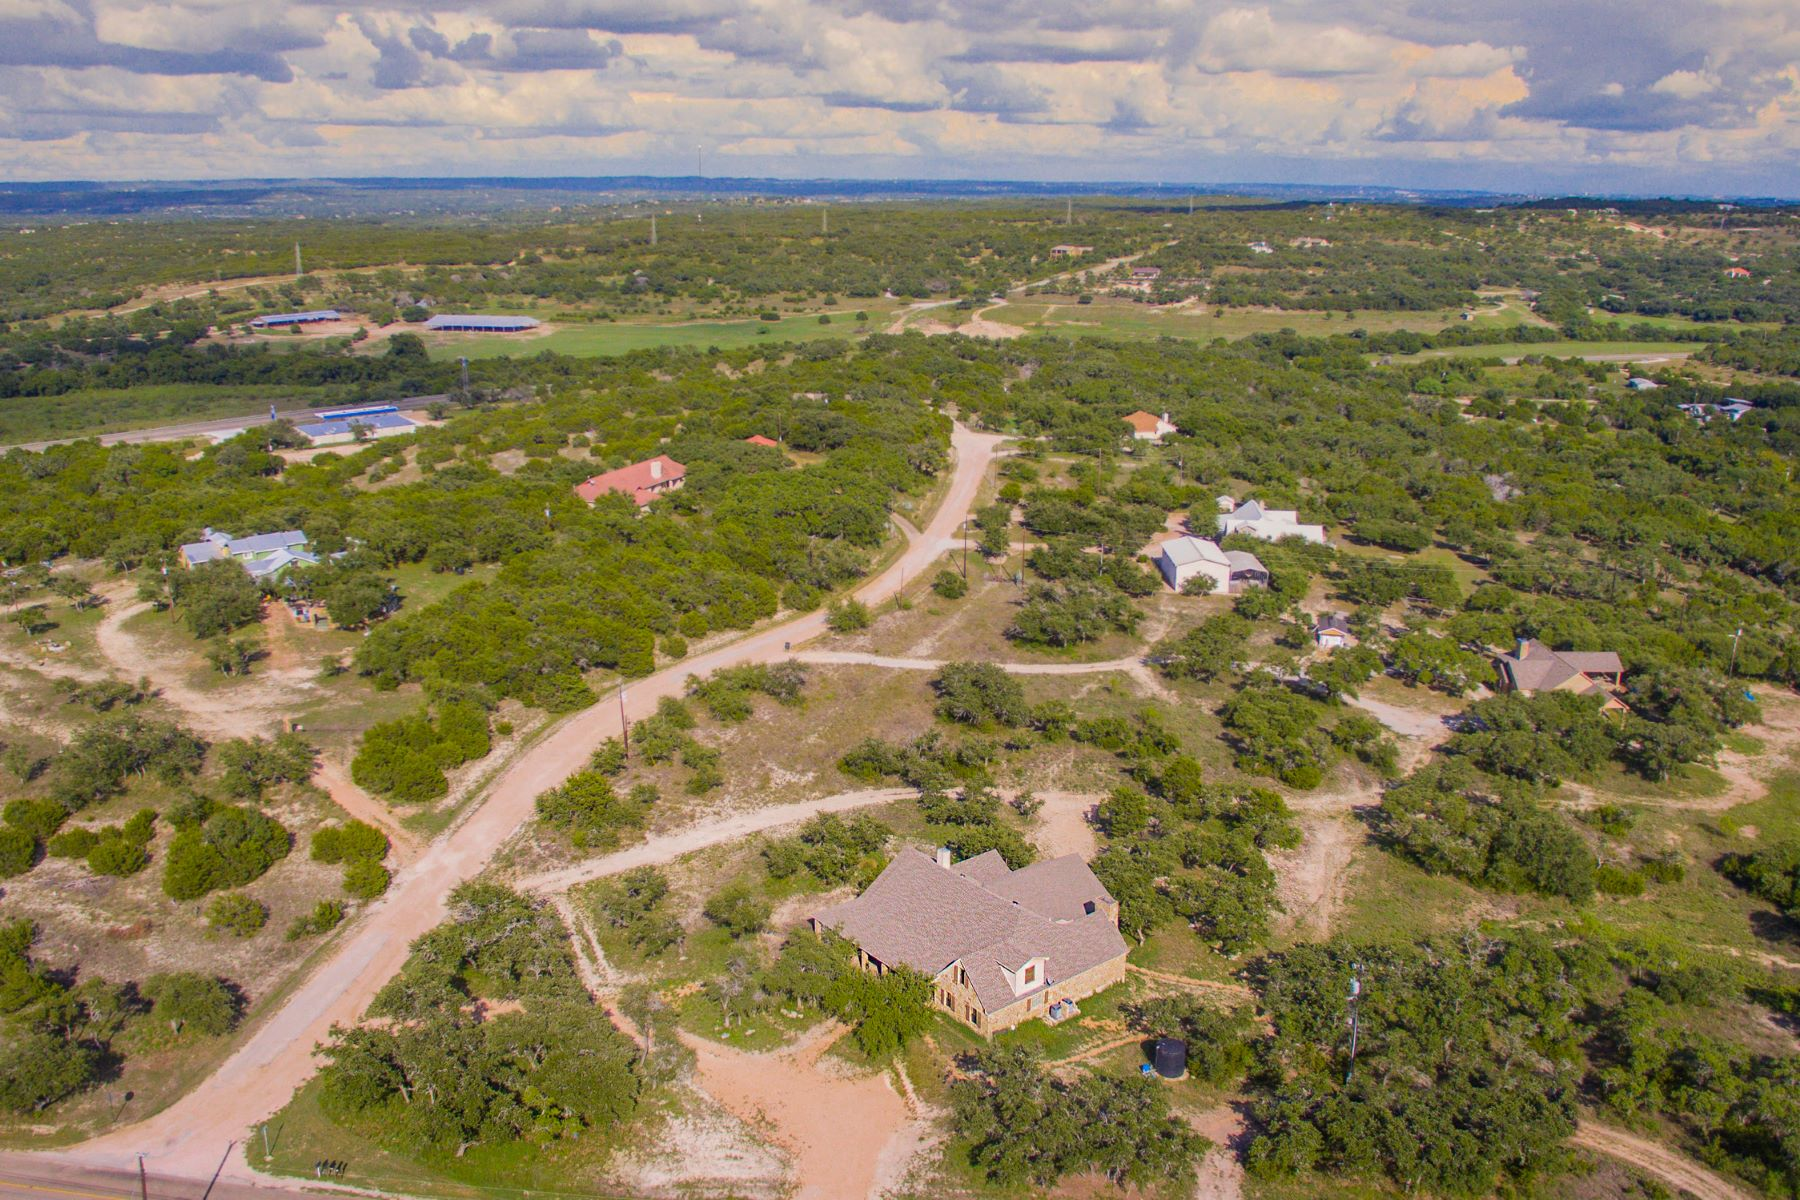 Single Family Home for Sale at Peaceful Country Living at its Best 101 Chaparral Circle, Spicewood, Texas, 78669 United States